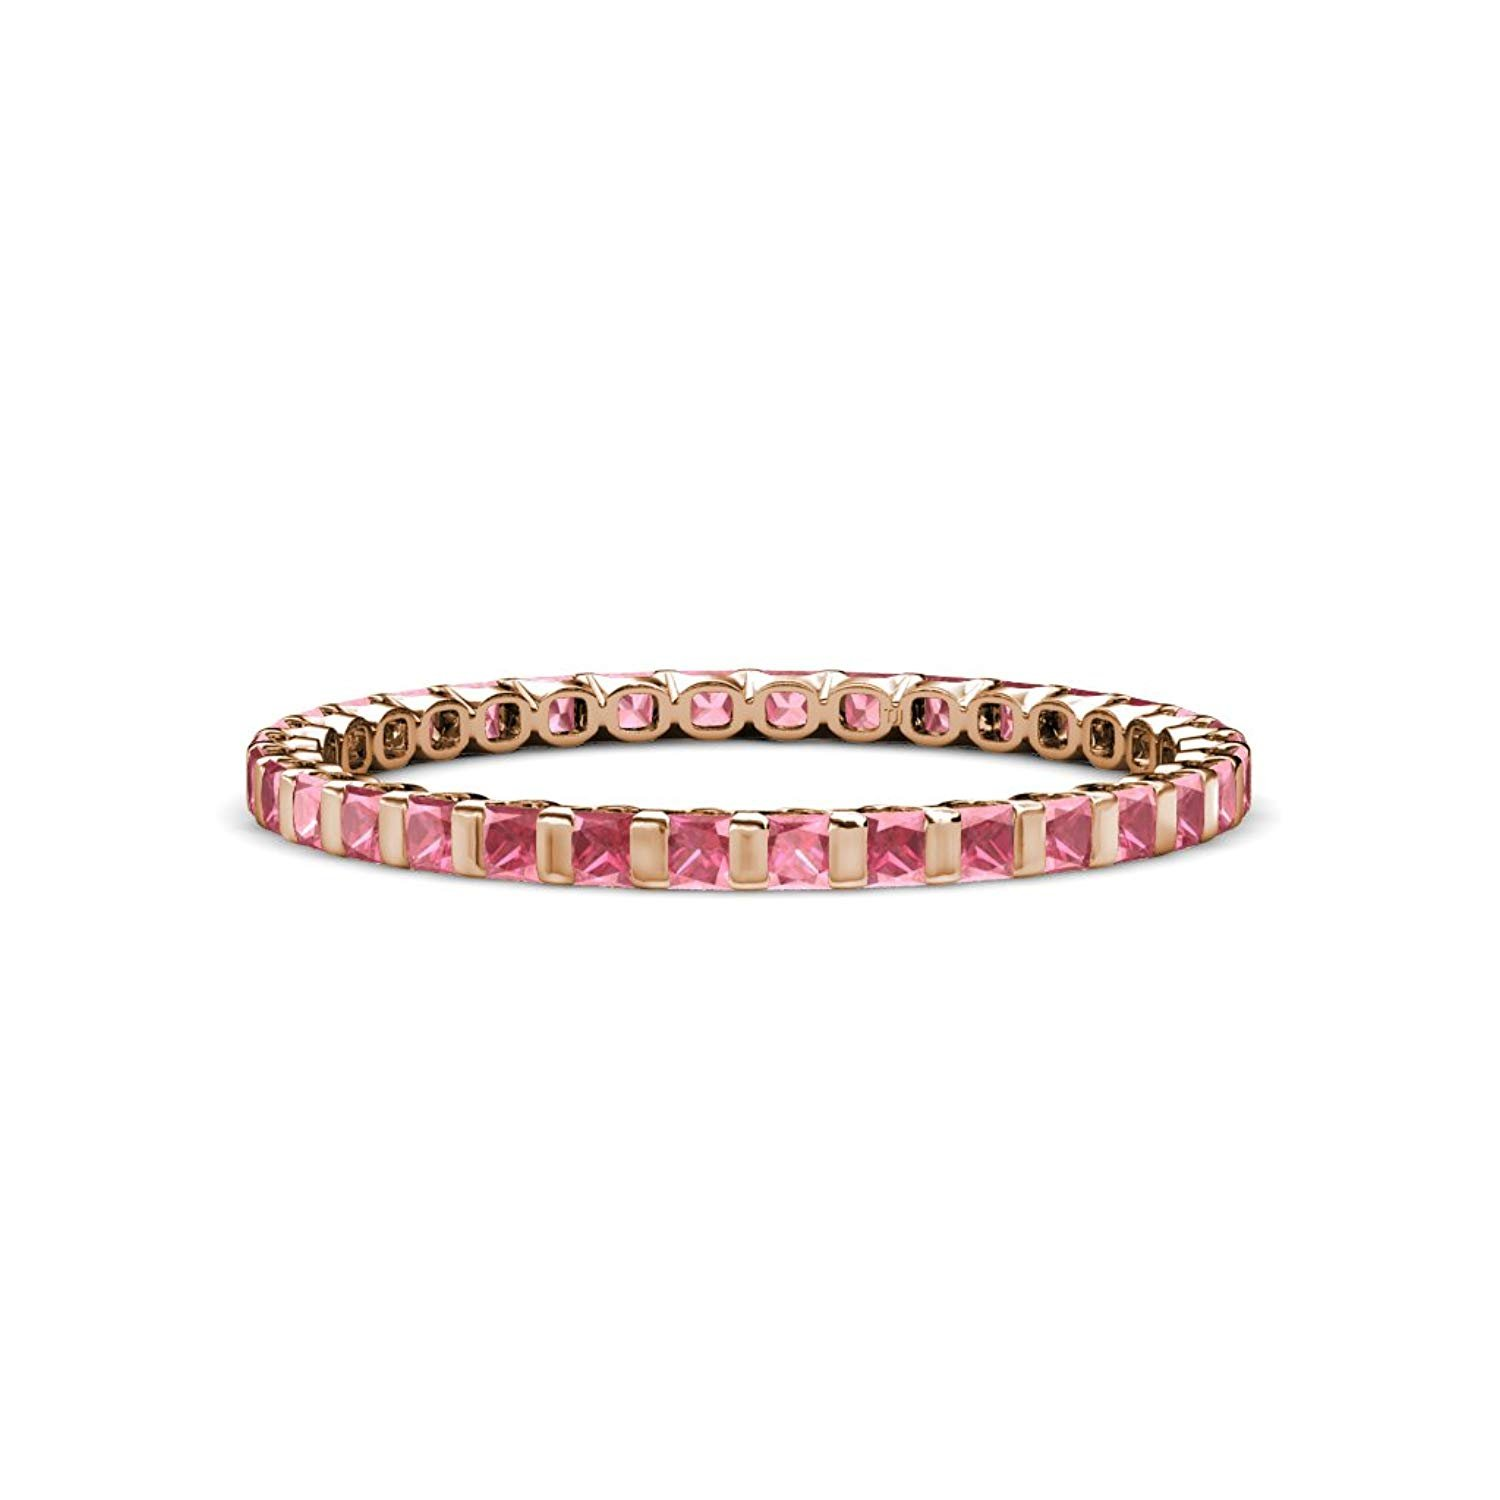 Pink Tourmaline 2mm Common Channel Set Eternity Band 1.05-1.20 Carat tw in 14K Rose Gold.size 8.0 by TriJewels